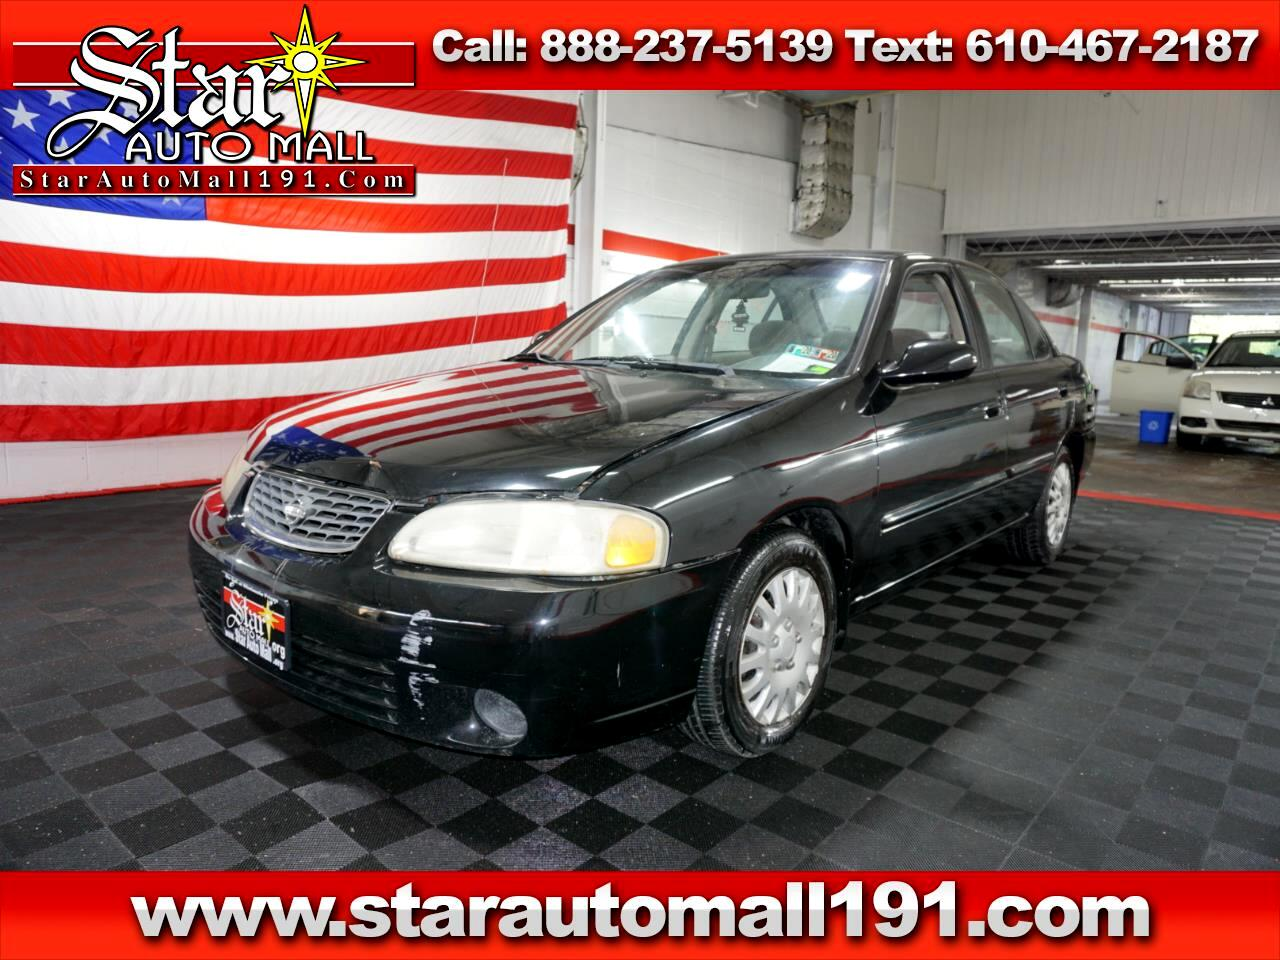 2002 Nissan Sentra 4dr Sdn GXE Auto